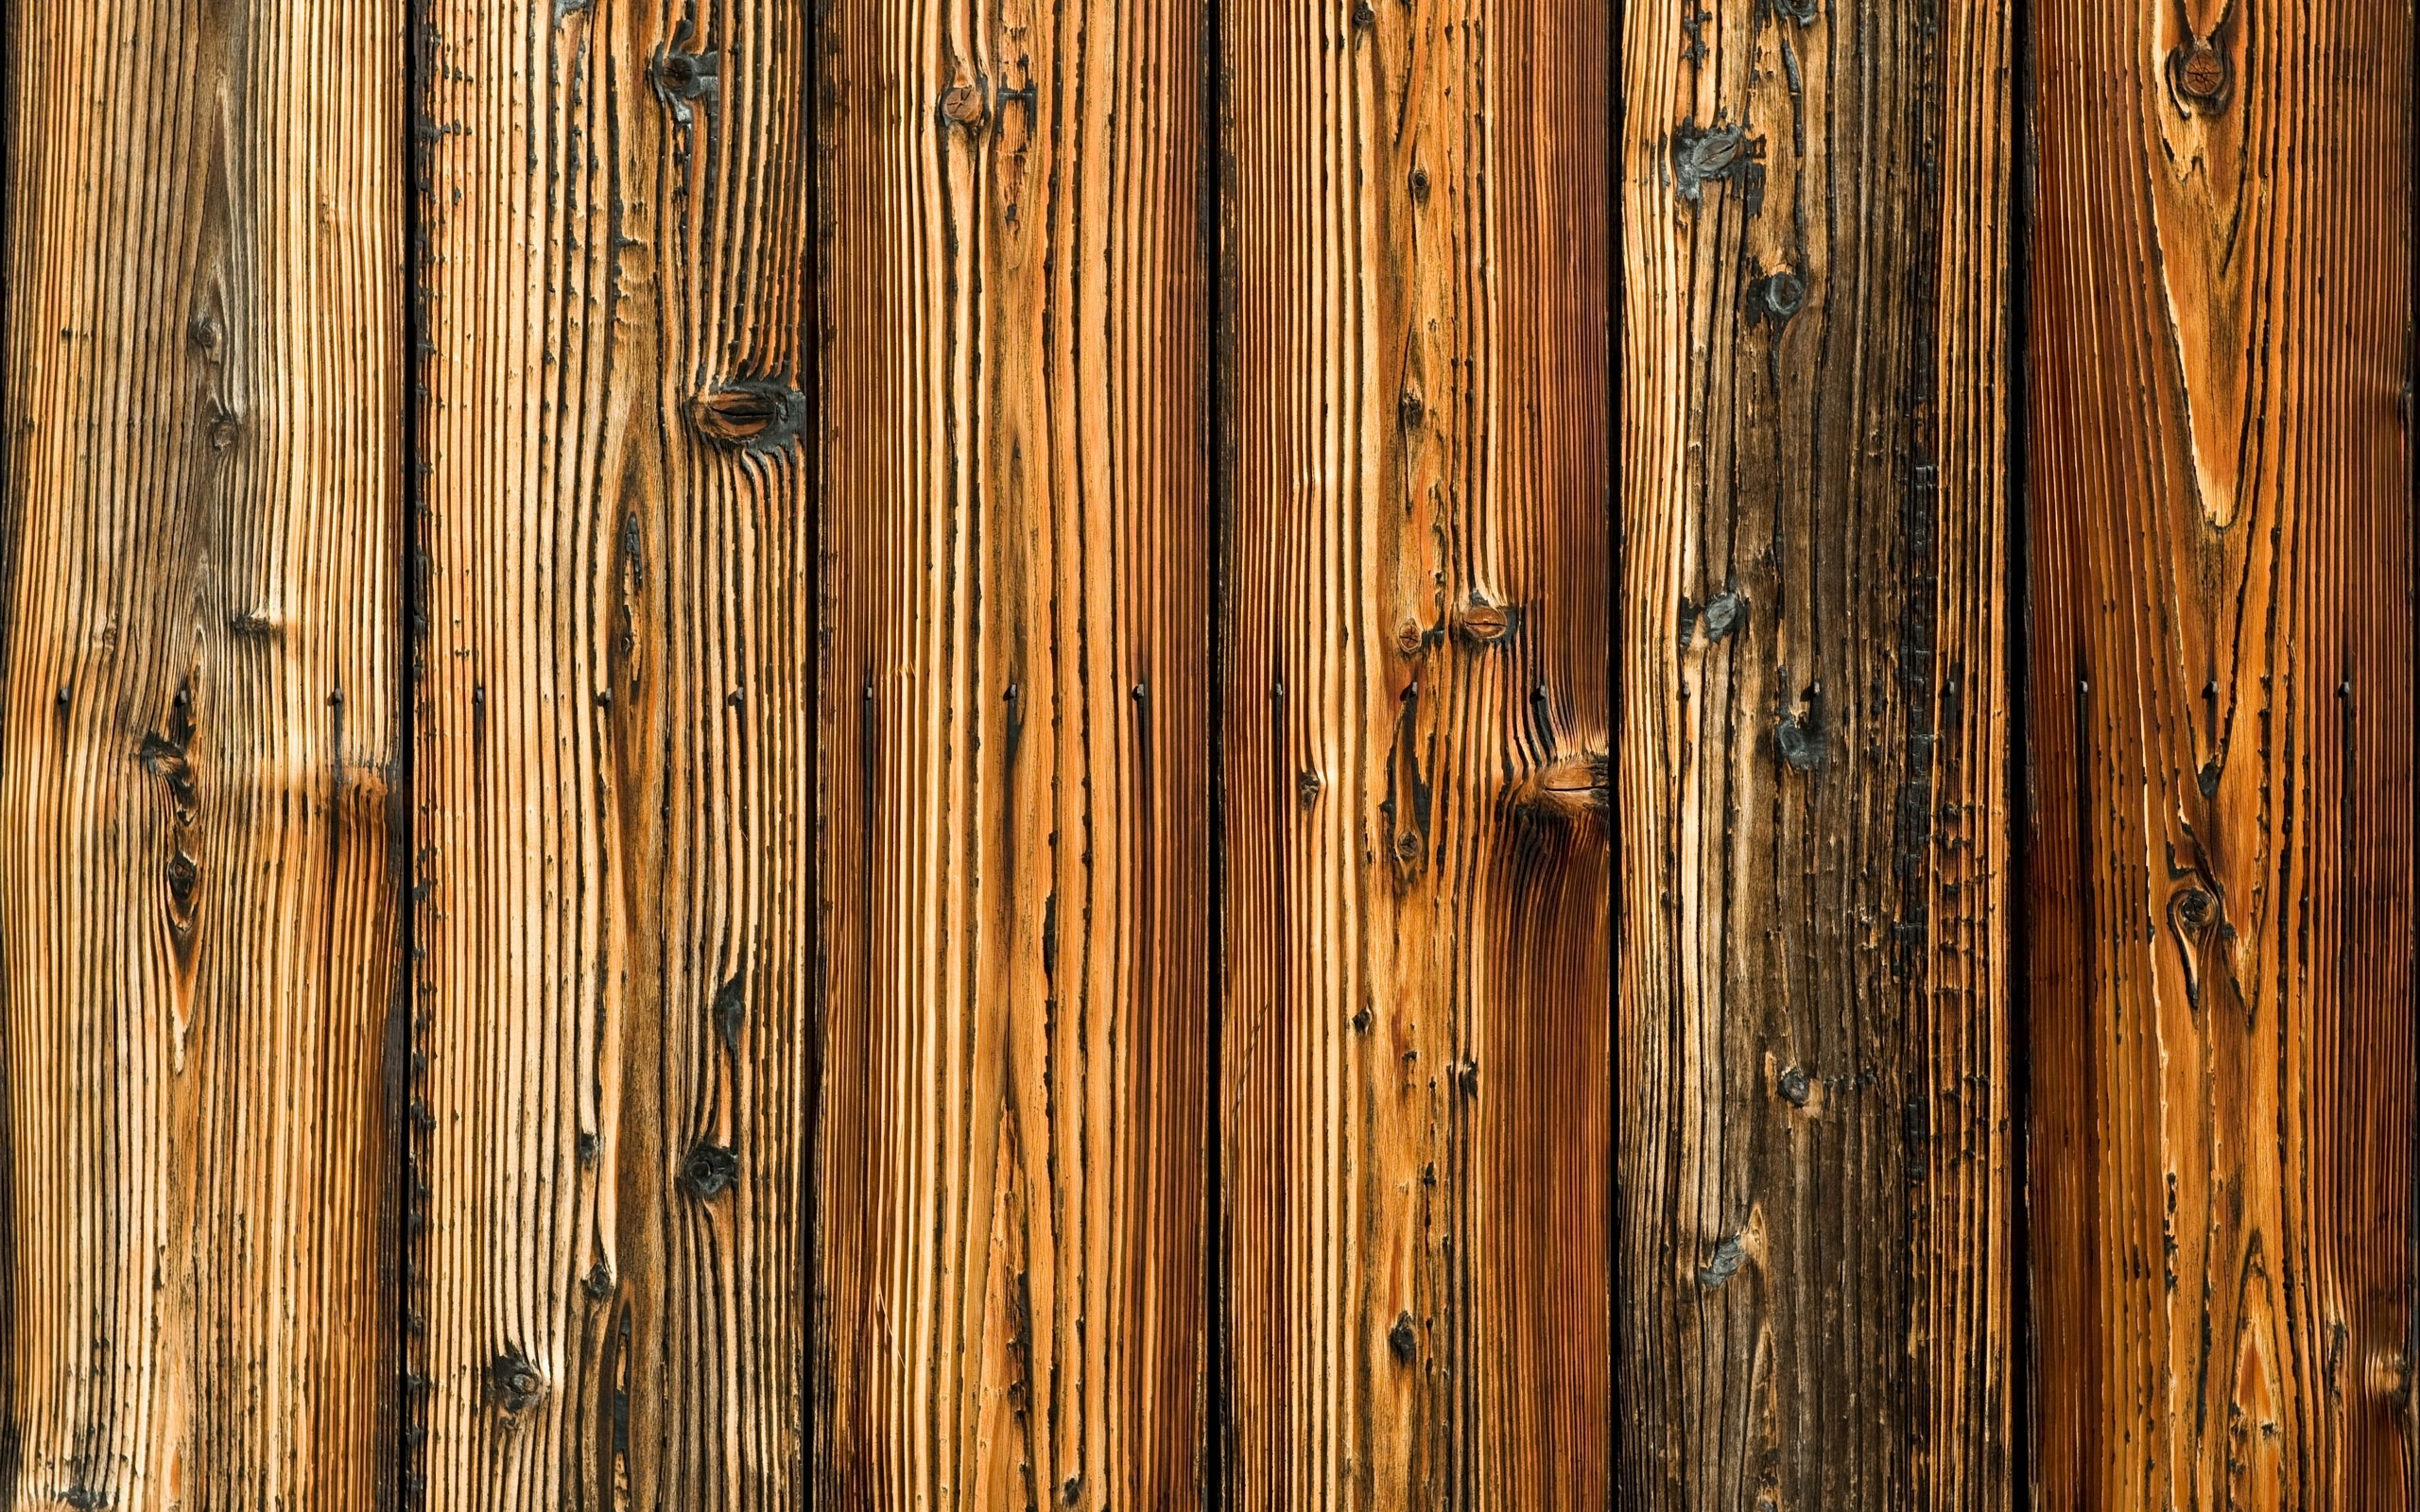 Textures Wood Board Wallpaper 2560x1600 Full HD Wallpapers 2560x1600